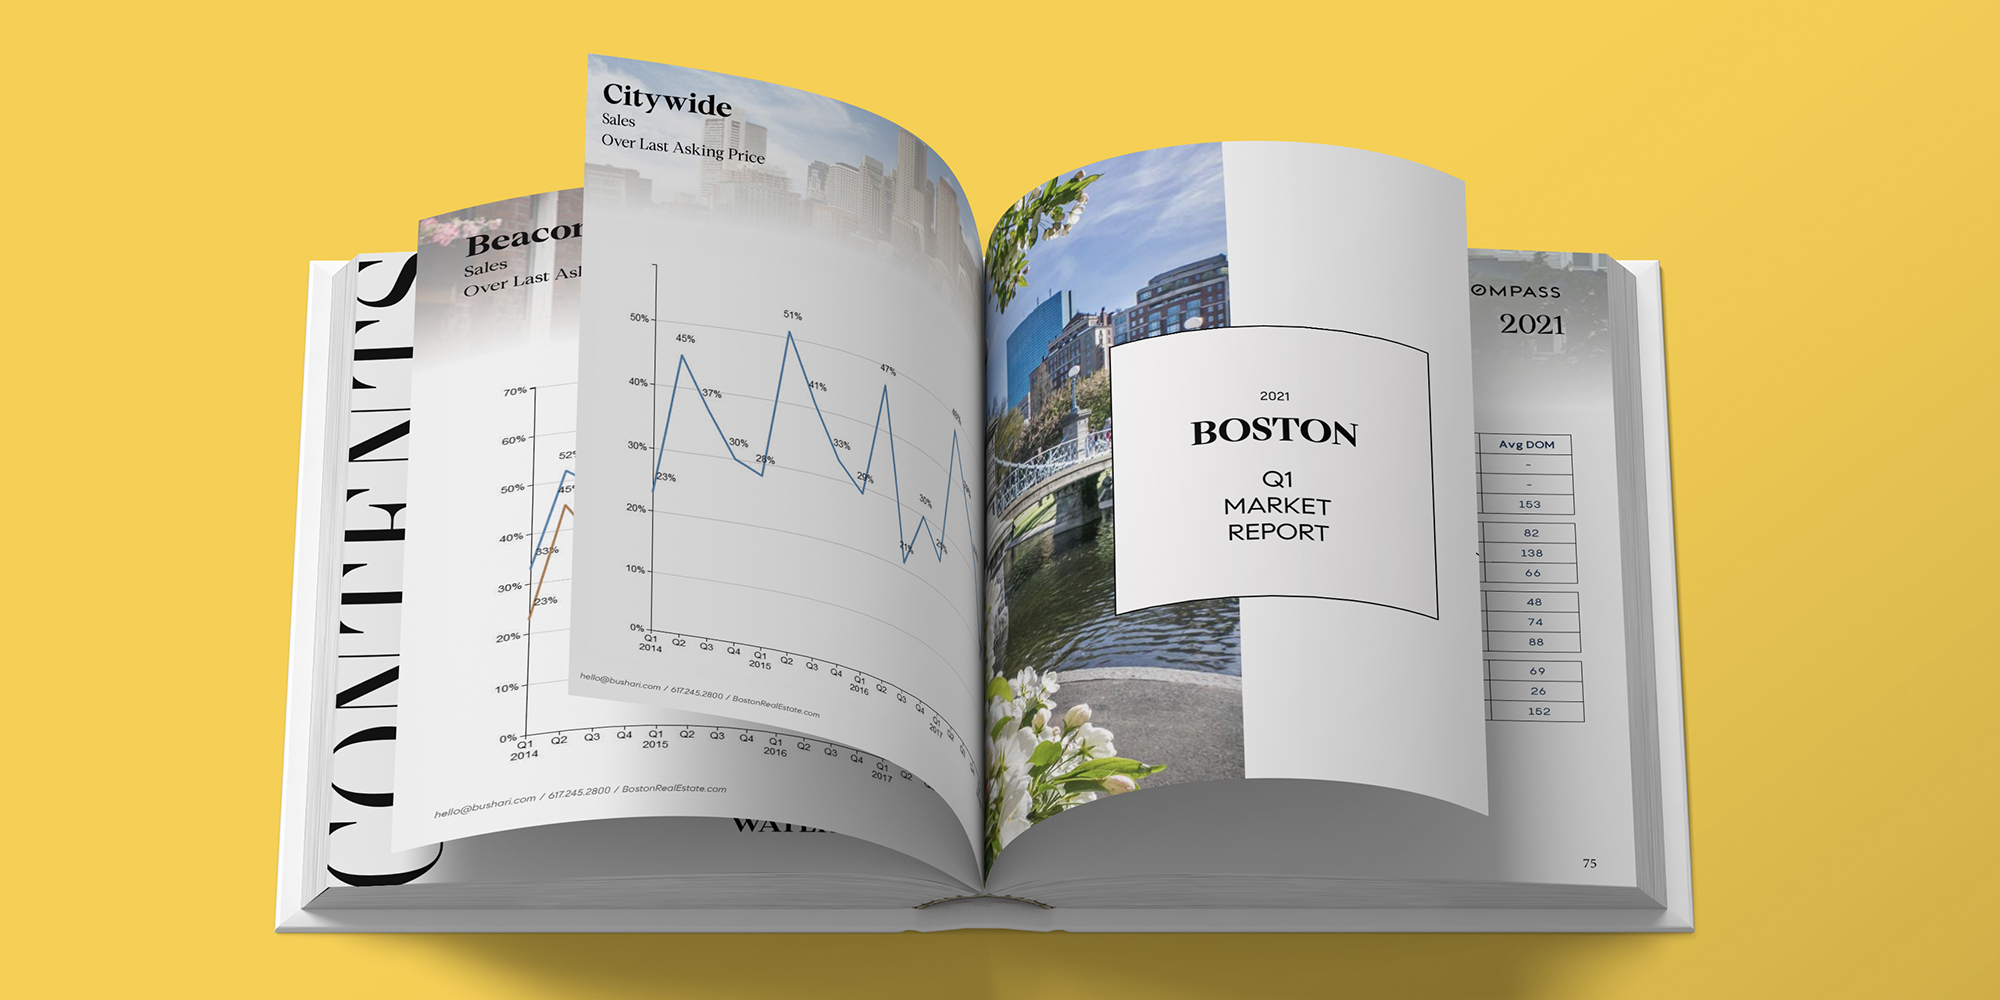 Boston's Q1 Market Report Shows Us How Boston Home Inventory & Prices Were Impacted This Quarter